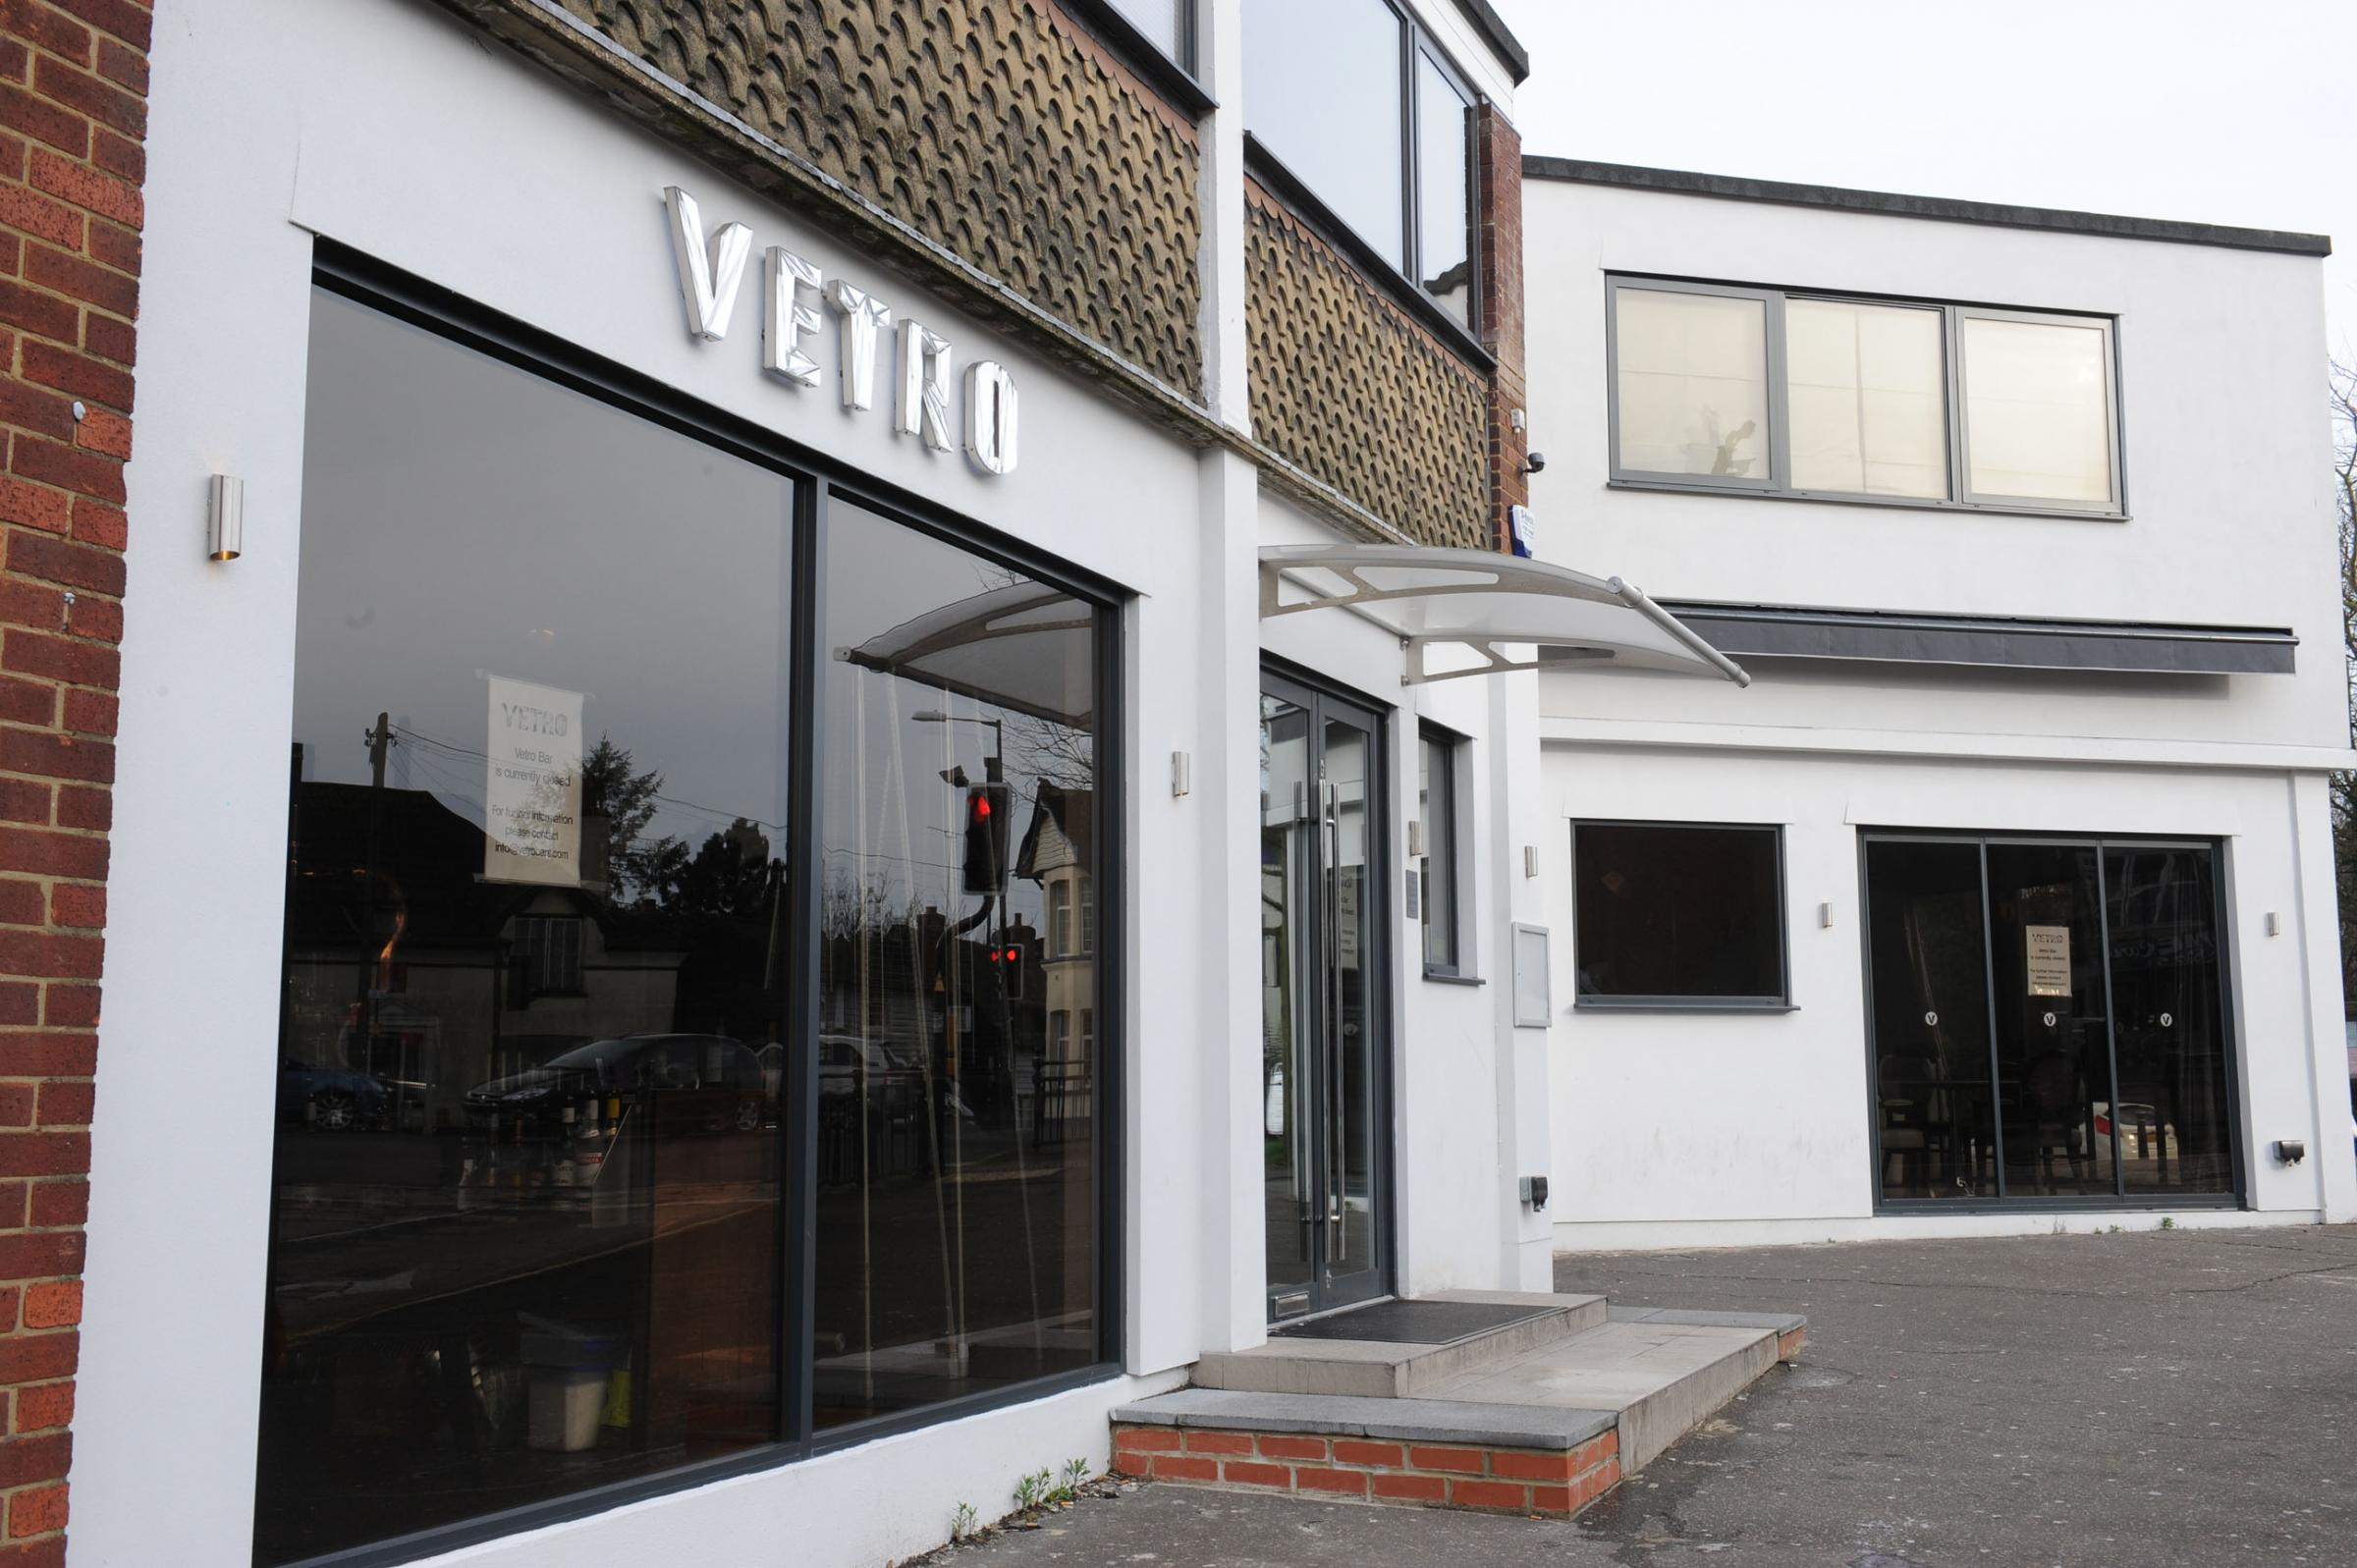 Deserted – the closed Vetro bar, in Western Road, Billericay